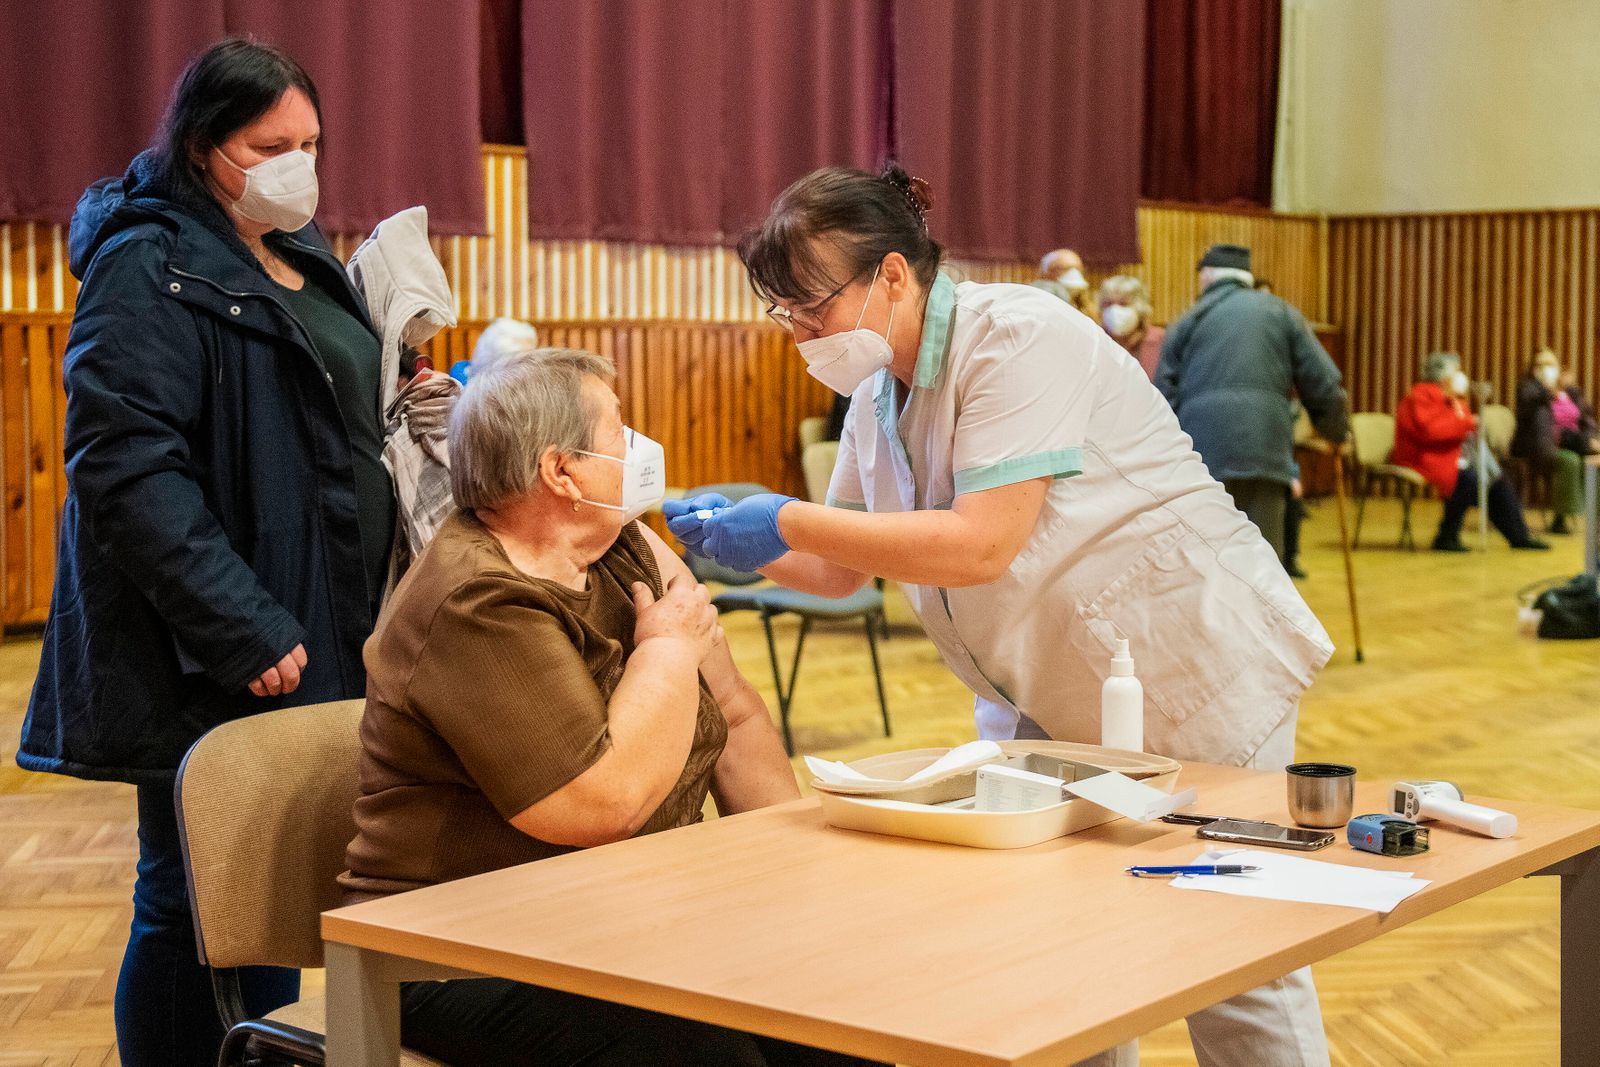 The vaccination center against COVID-19 start operation on February 26, 2021, in the House of Culture in Stribro, near T